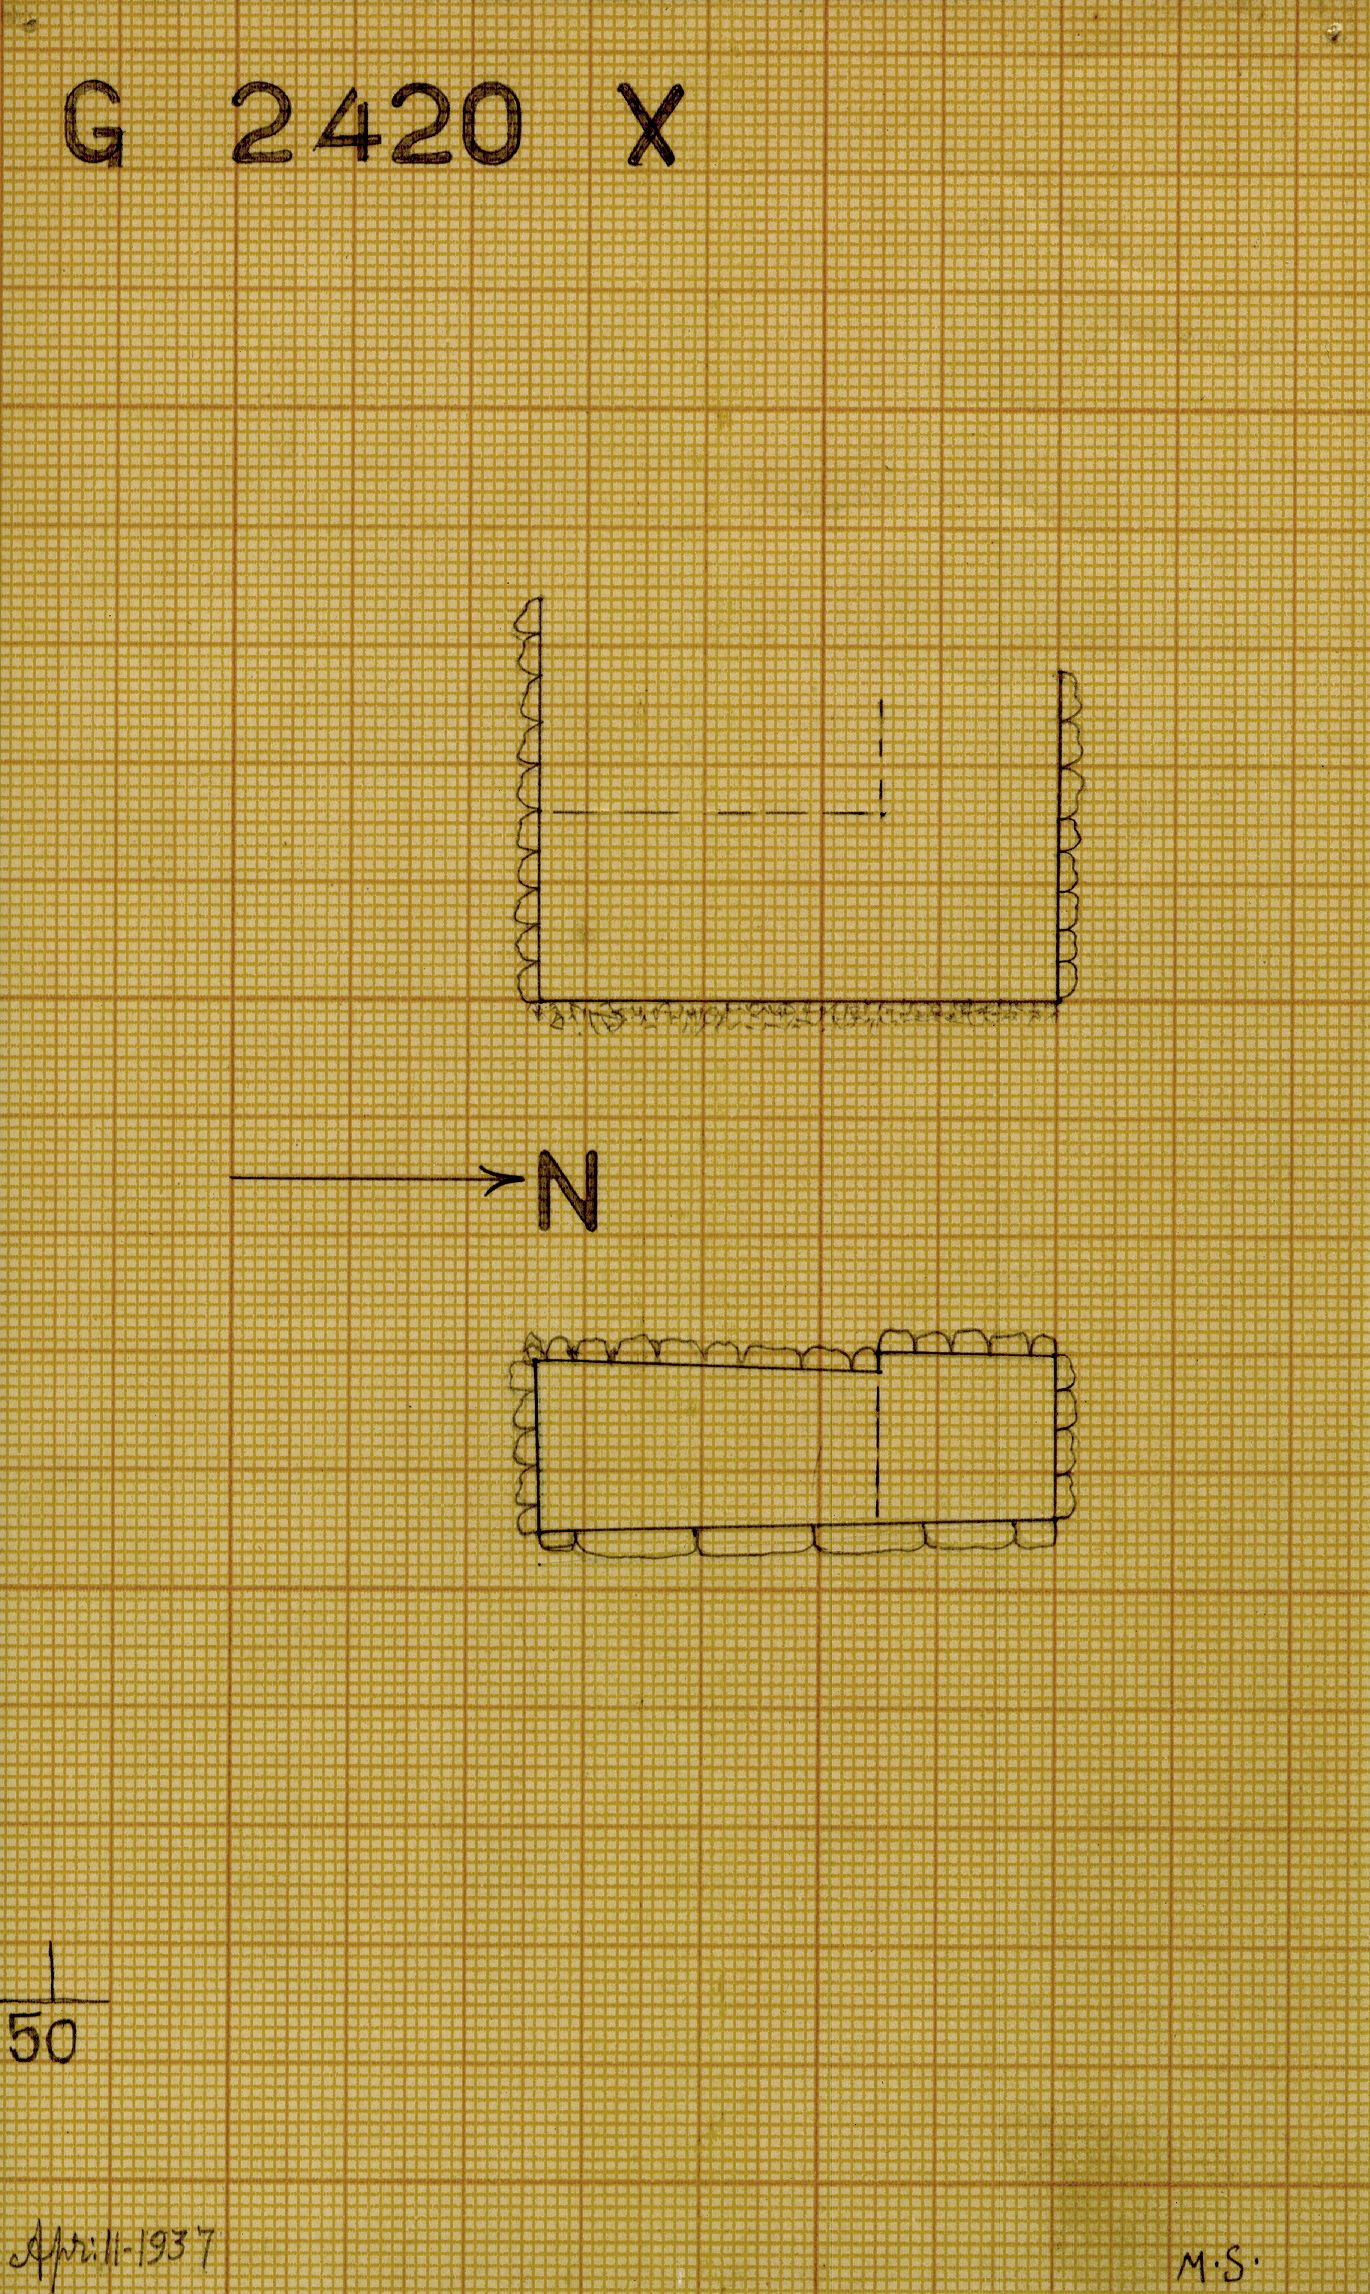 Maps and plans: G 2420, Shaft X